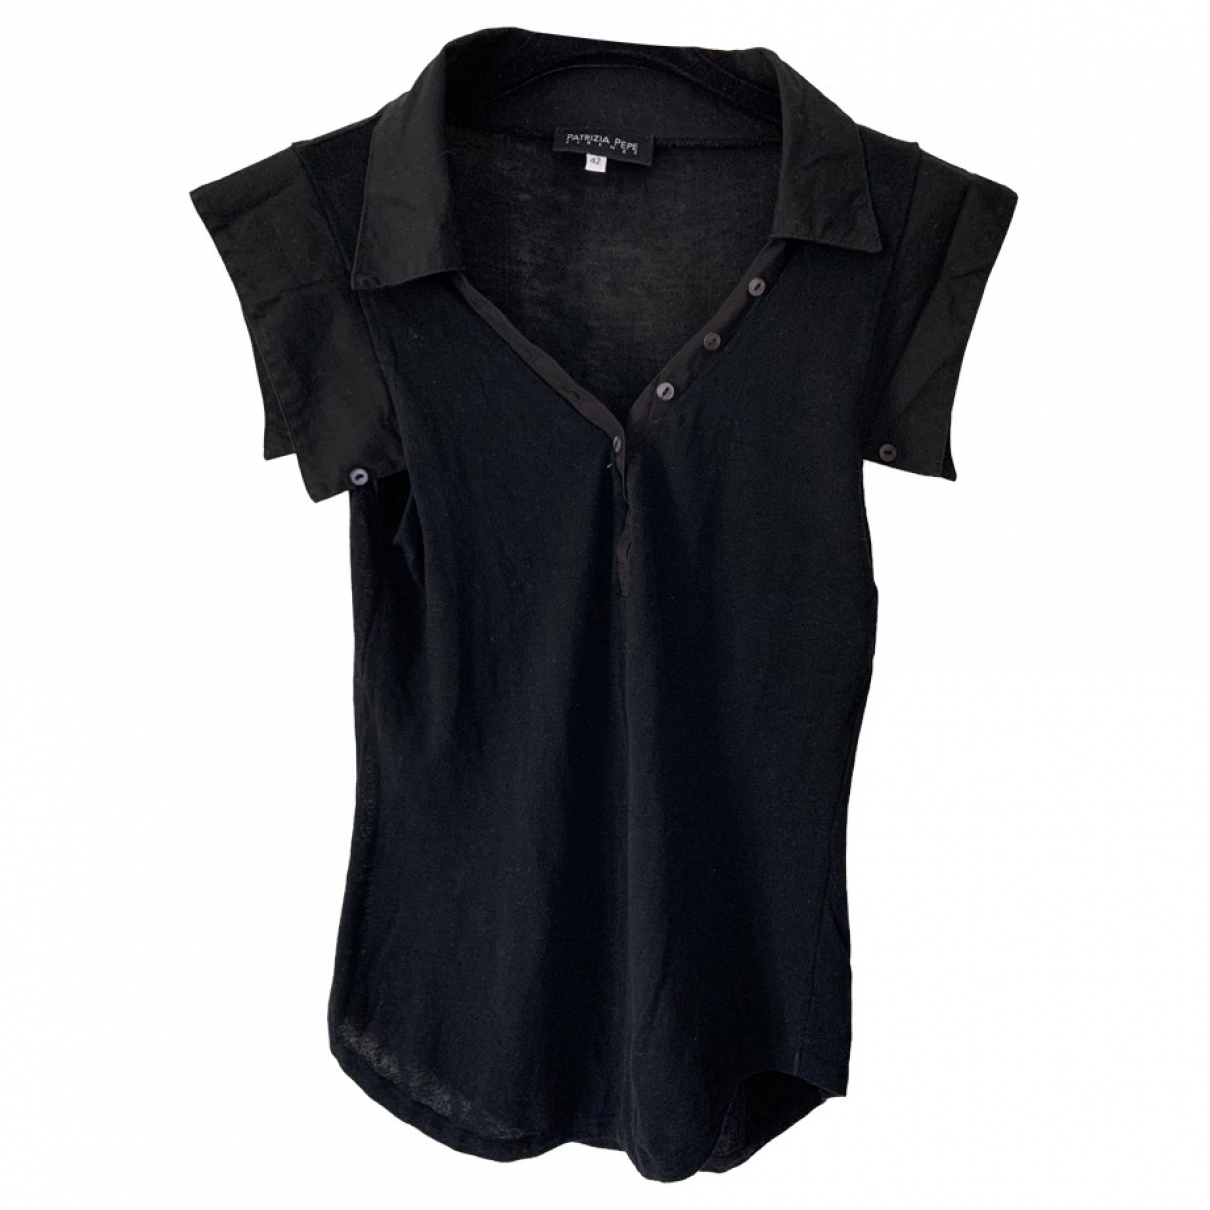 Patrizia Pepe \N Black  top for Women 42 IT